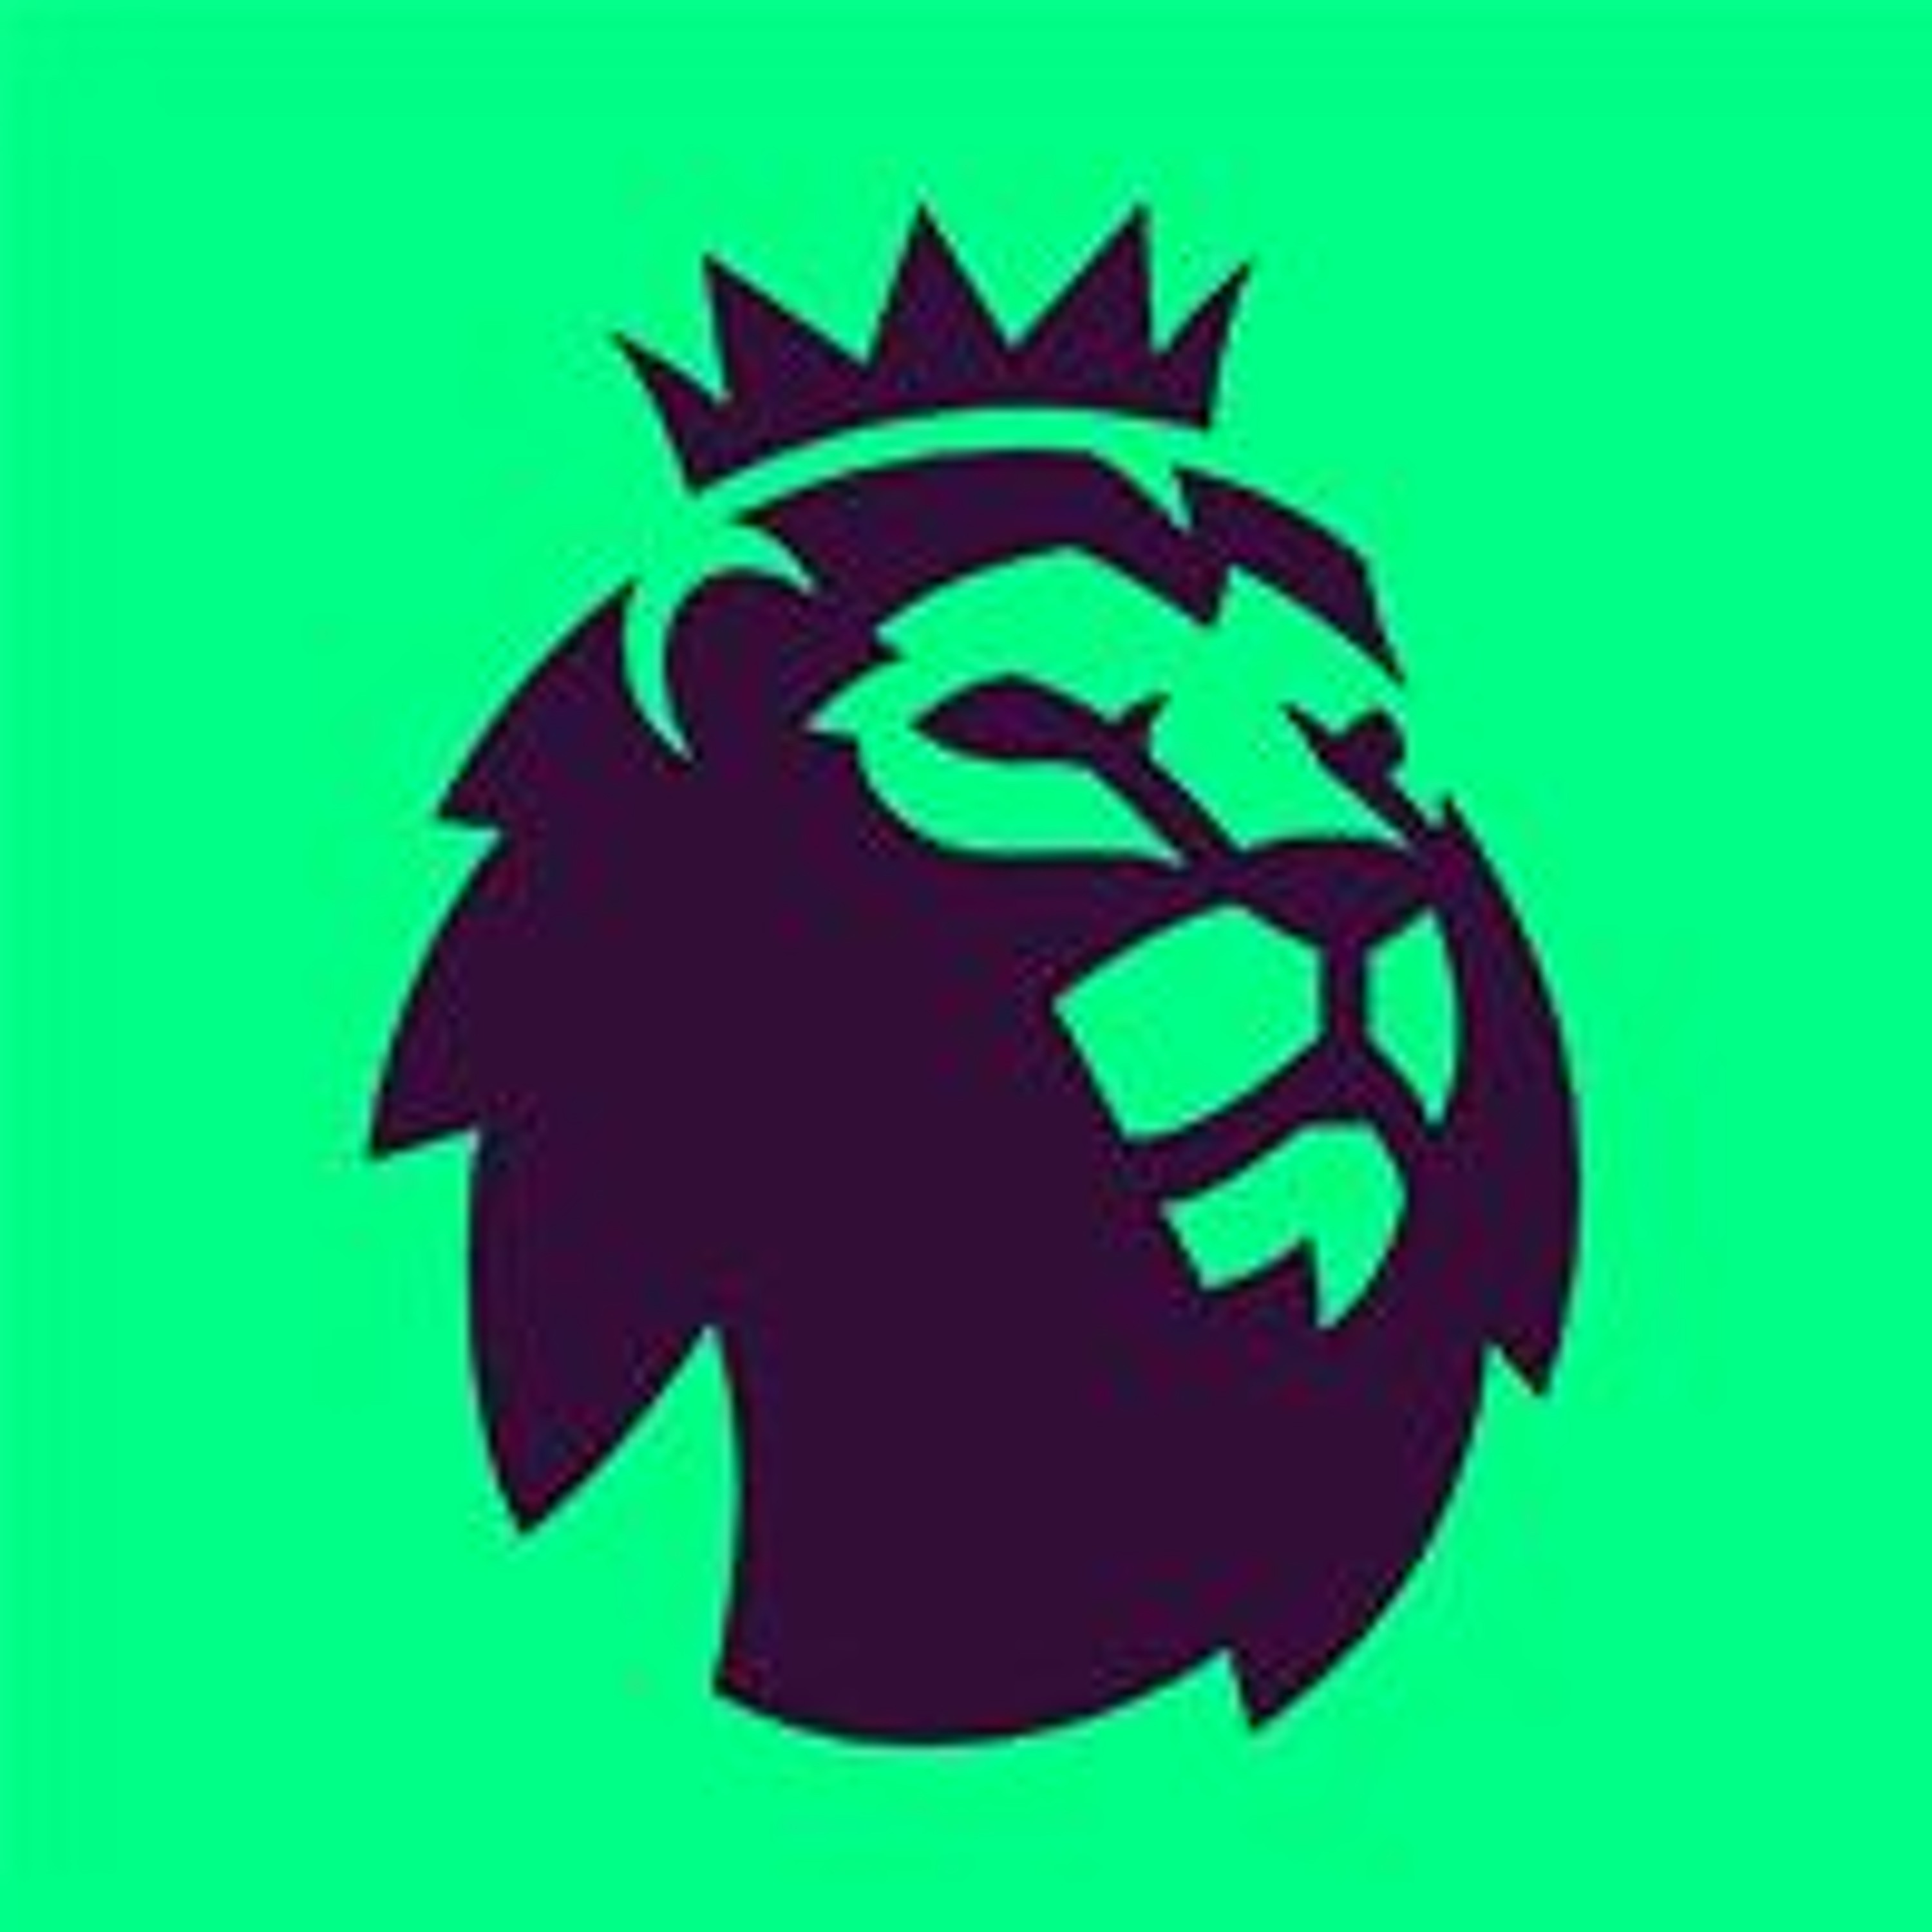 Episode 79: Top 10 EPL Club Mid Season Report